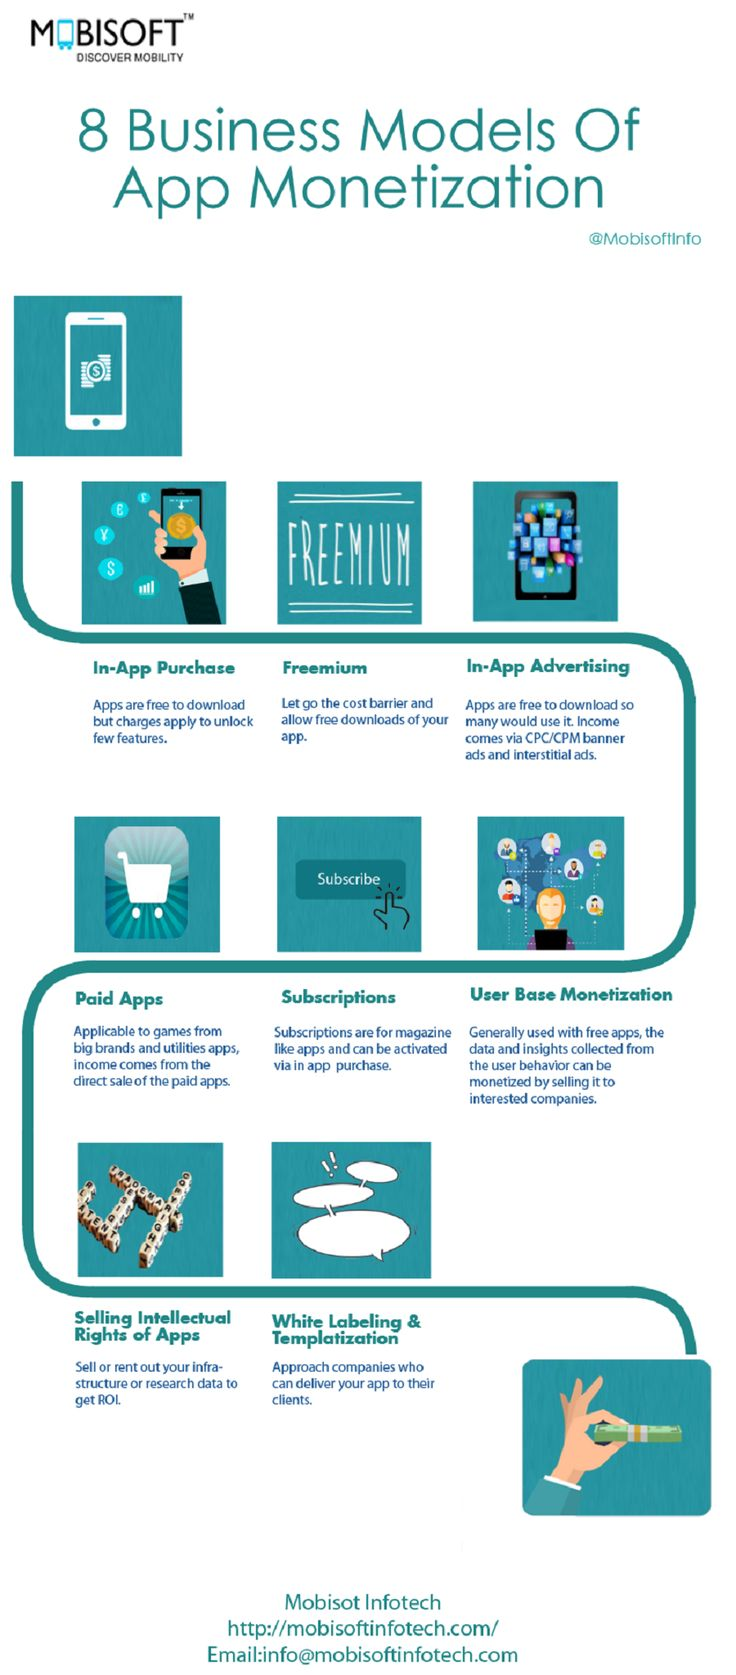 This Infographic depicts the eight business models of app monetization. It includes eight business model and they are in-app purchase, freemium, in-app advertising, paid apps, subscriptions, user base monetization, selling intellectual rights of apps and white labeling & templatization. App Monetization helps you to generate decent revenue and help you meet your expectations.